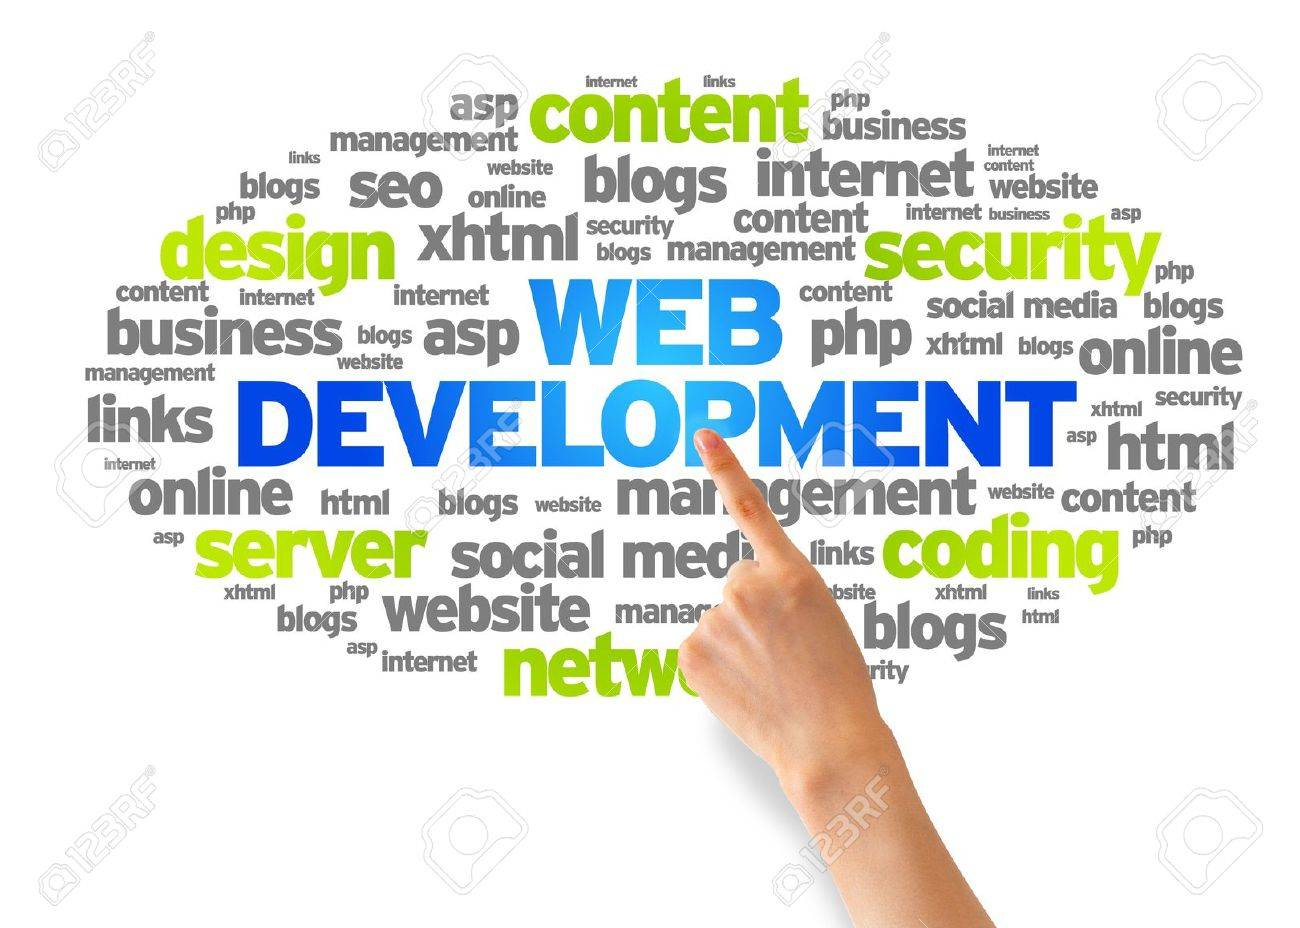 Background image xhtml - Hand Pointing At A Web Development Word Cloud On White Background Stock Photo 14768868